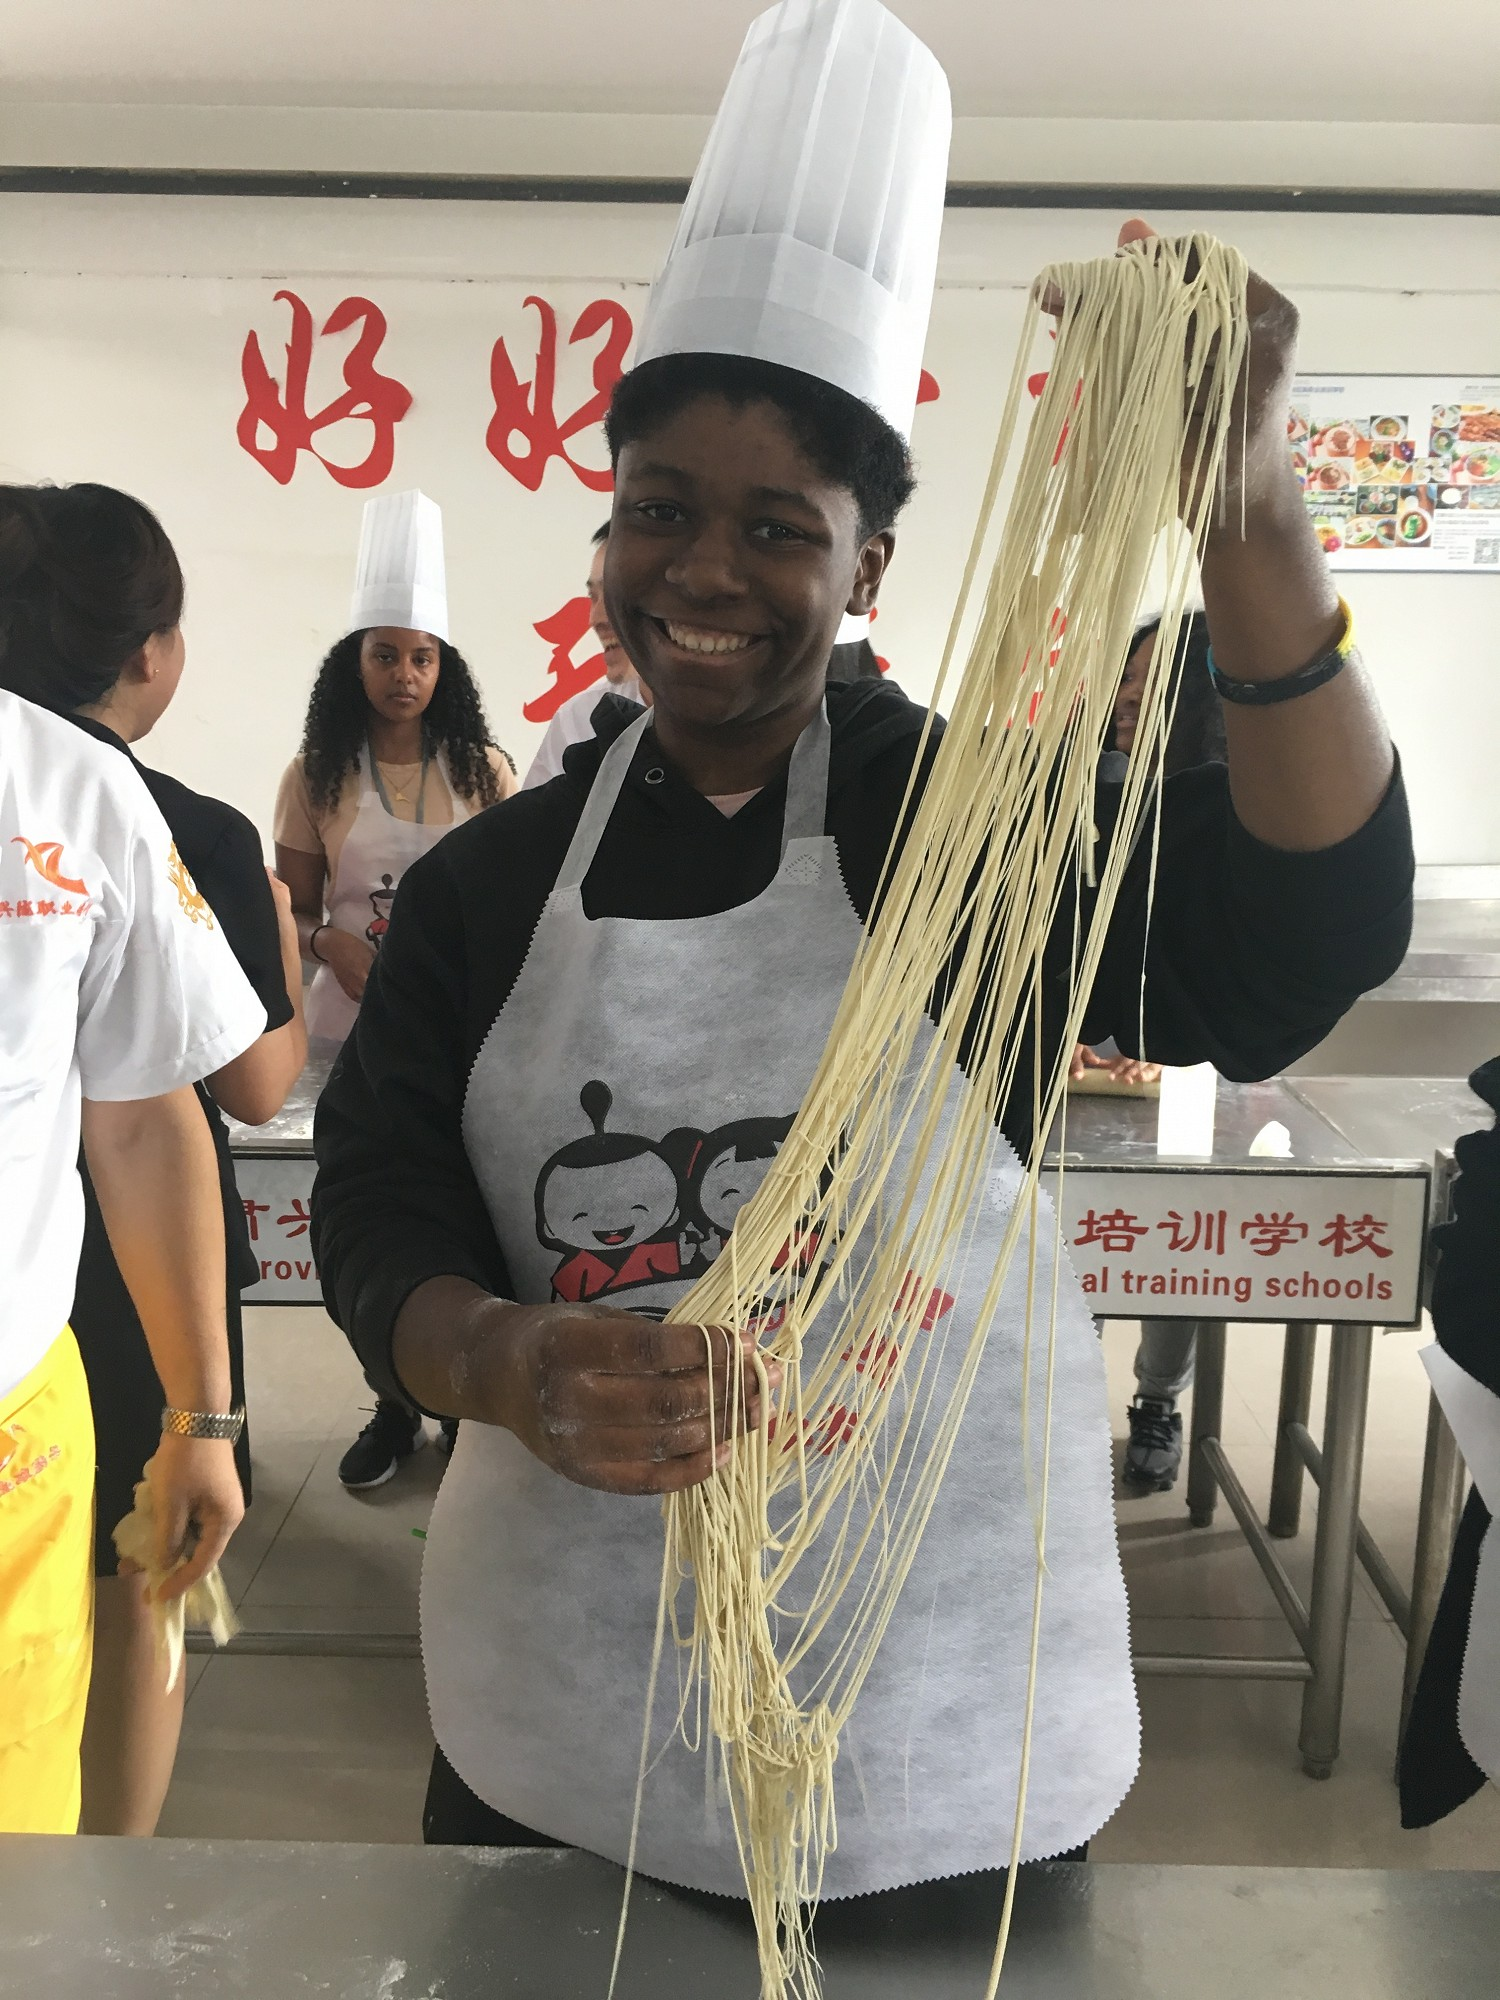 Peralta student experience traditional noodle making at a culinary school in Lanzhou